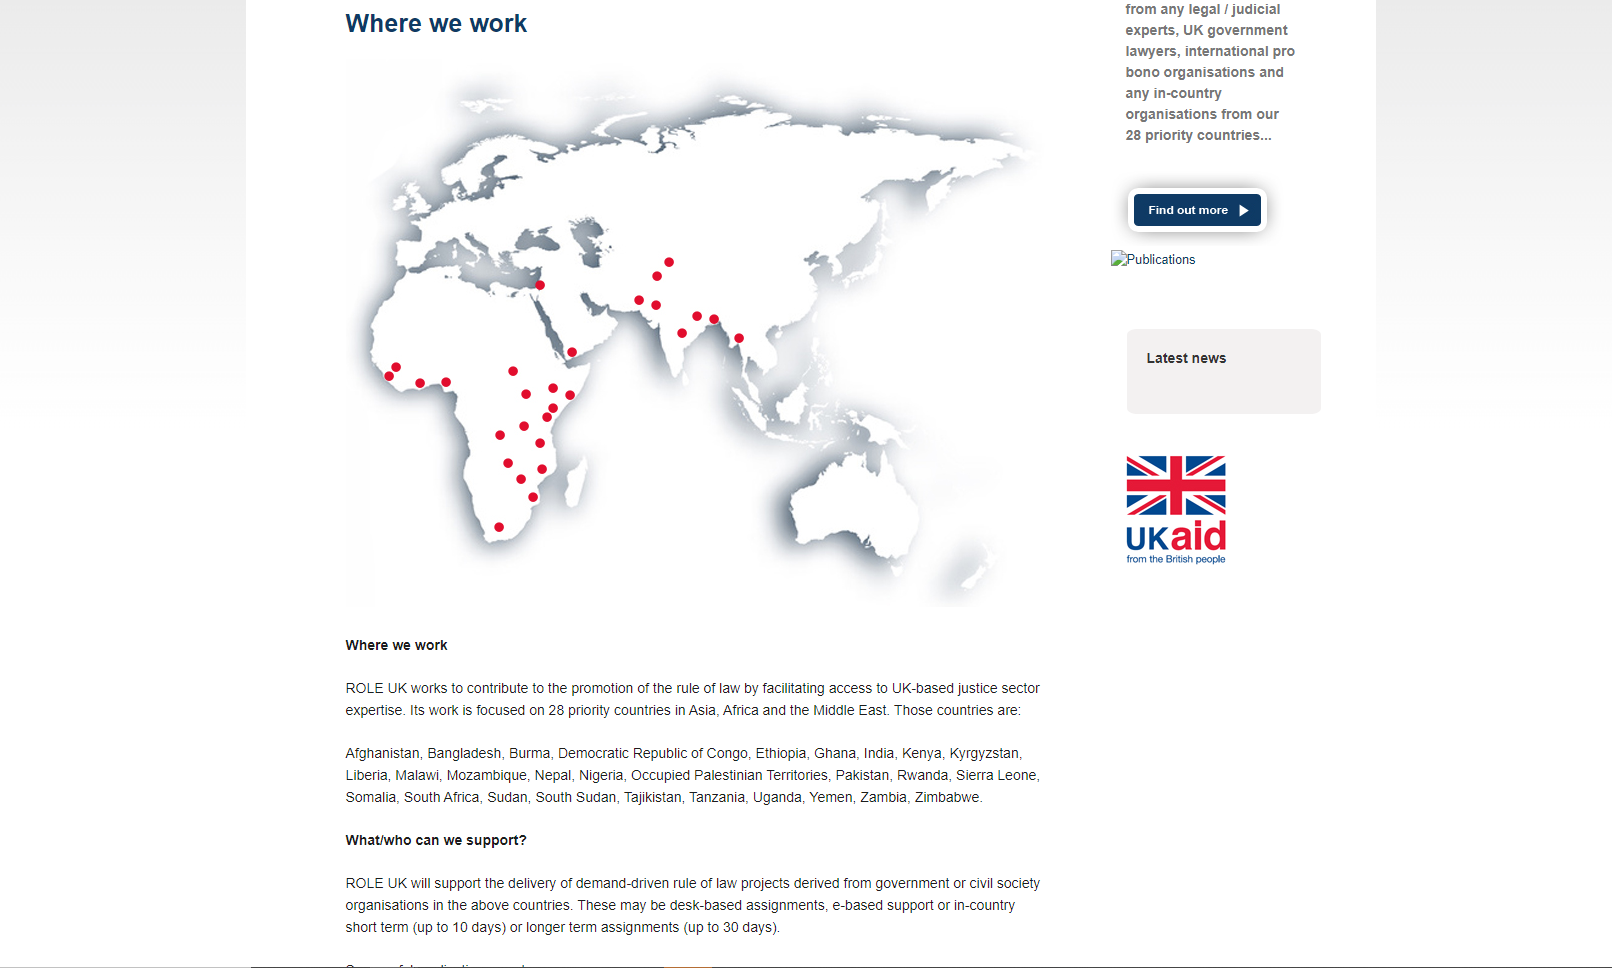 Role UK (Rule of Law Expertise UK) website